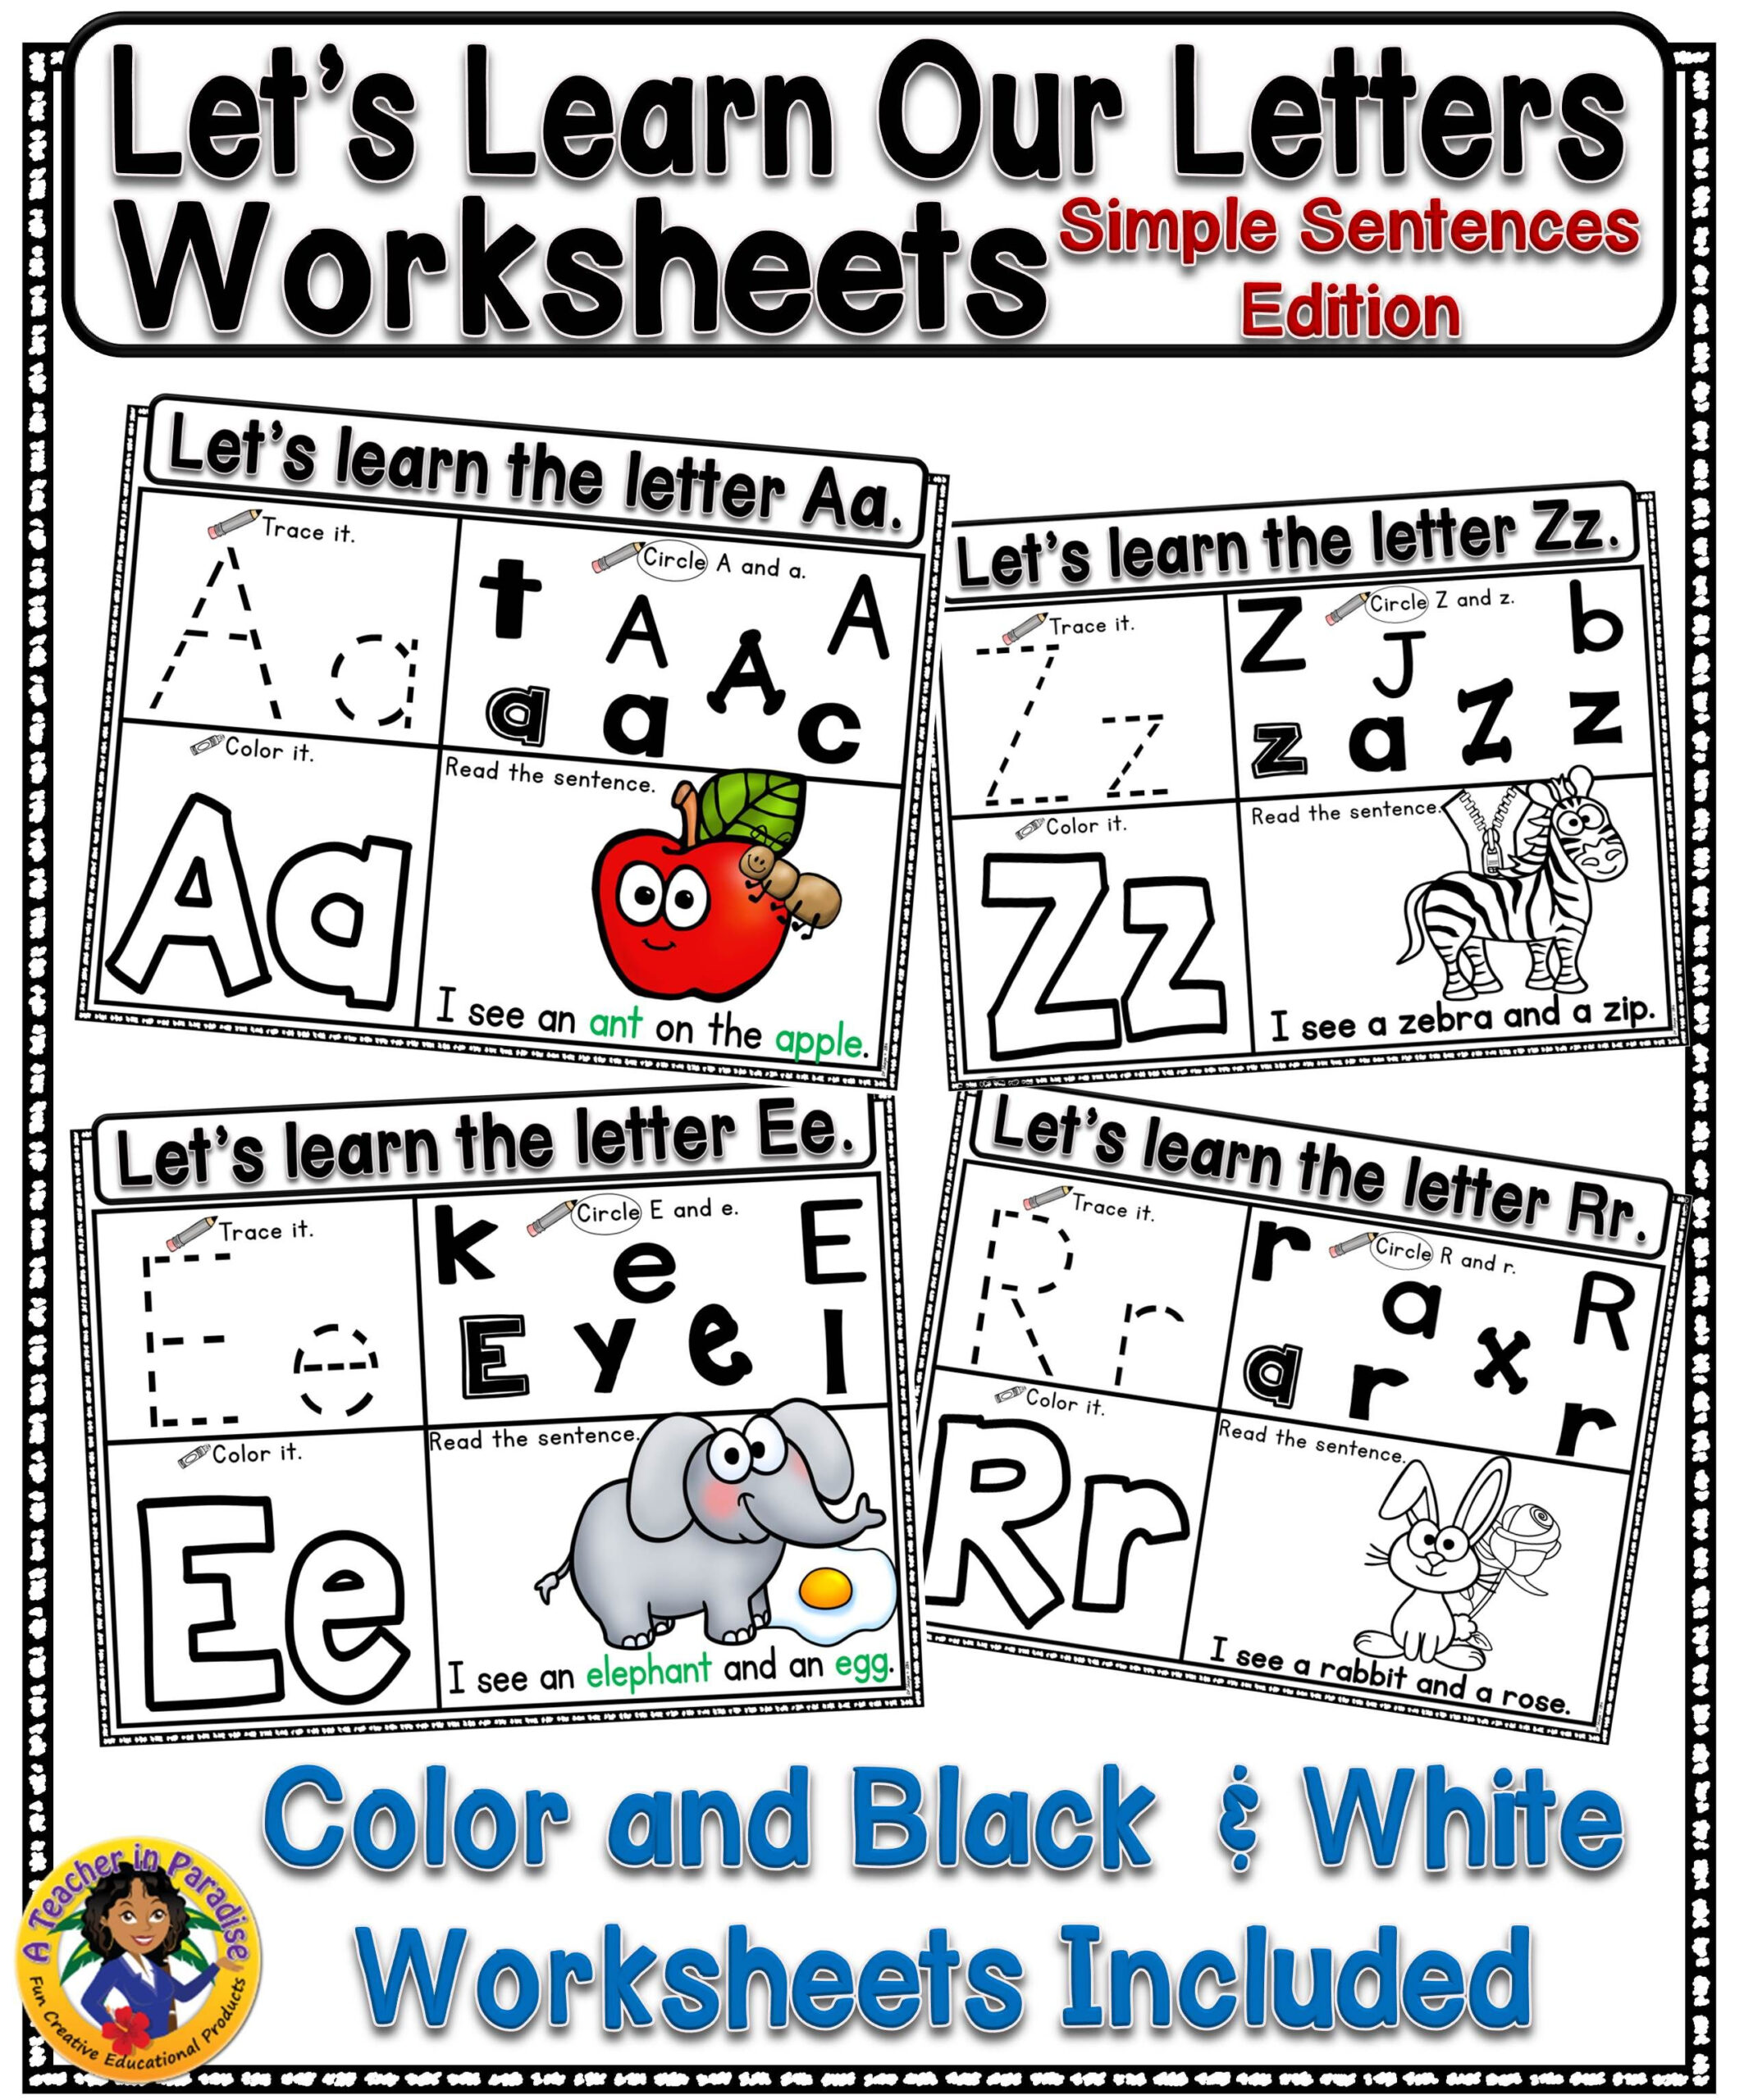 Let's Learn Our Letters {Simple Sentences Edition} | Simple regarding Alphabet Worksheets For Young Learners